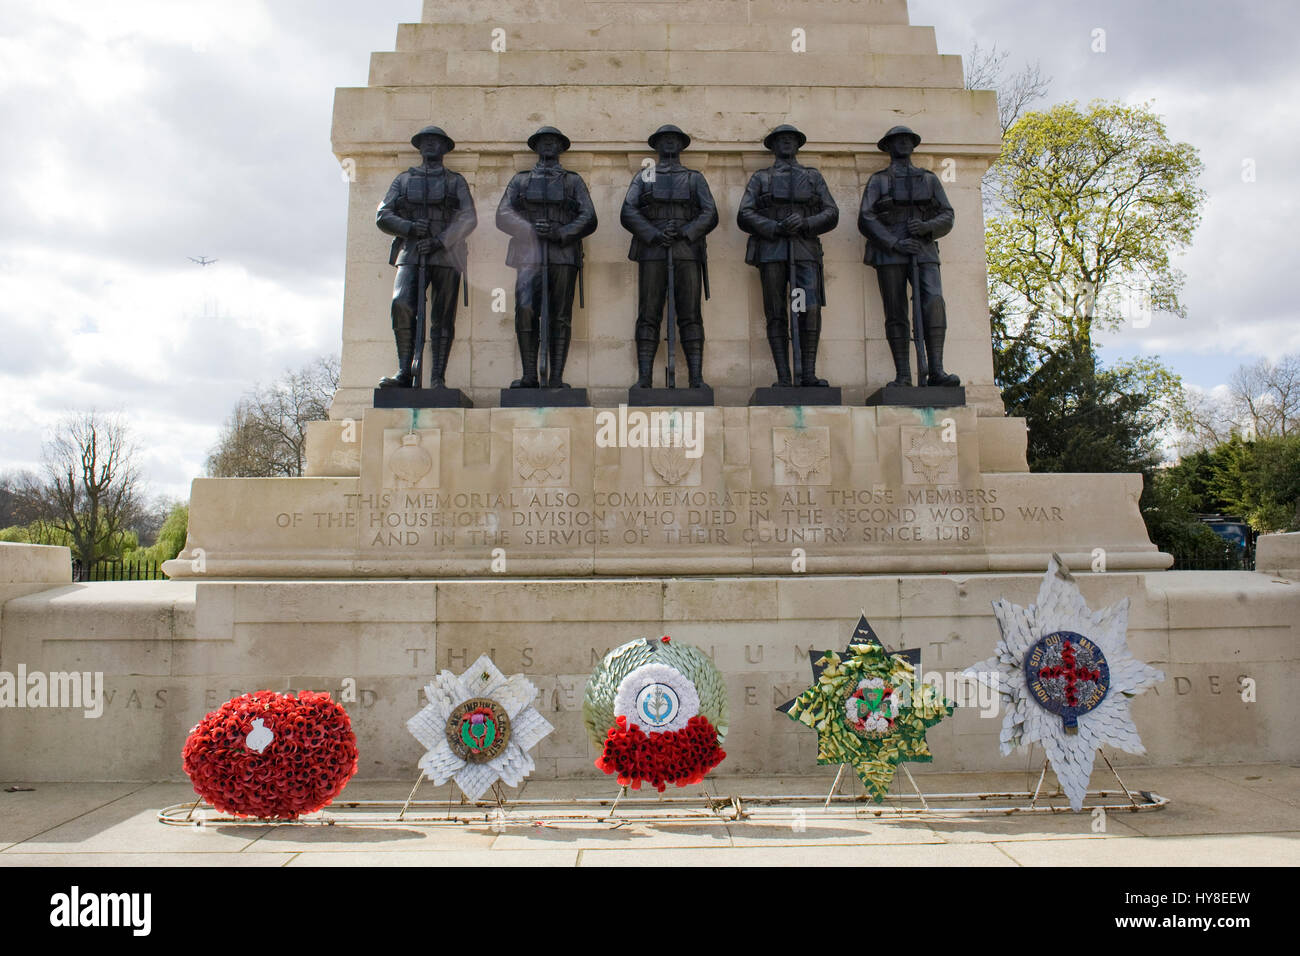 Household division memorial Opposite Horseguards Parade London - Stock Image